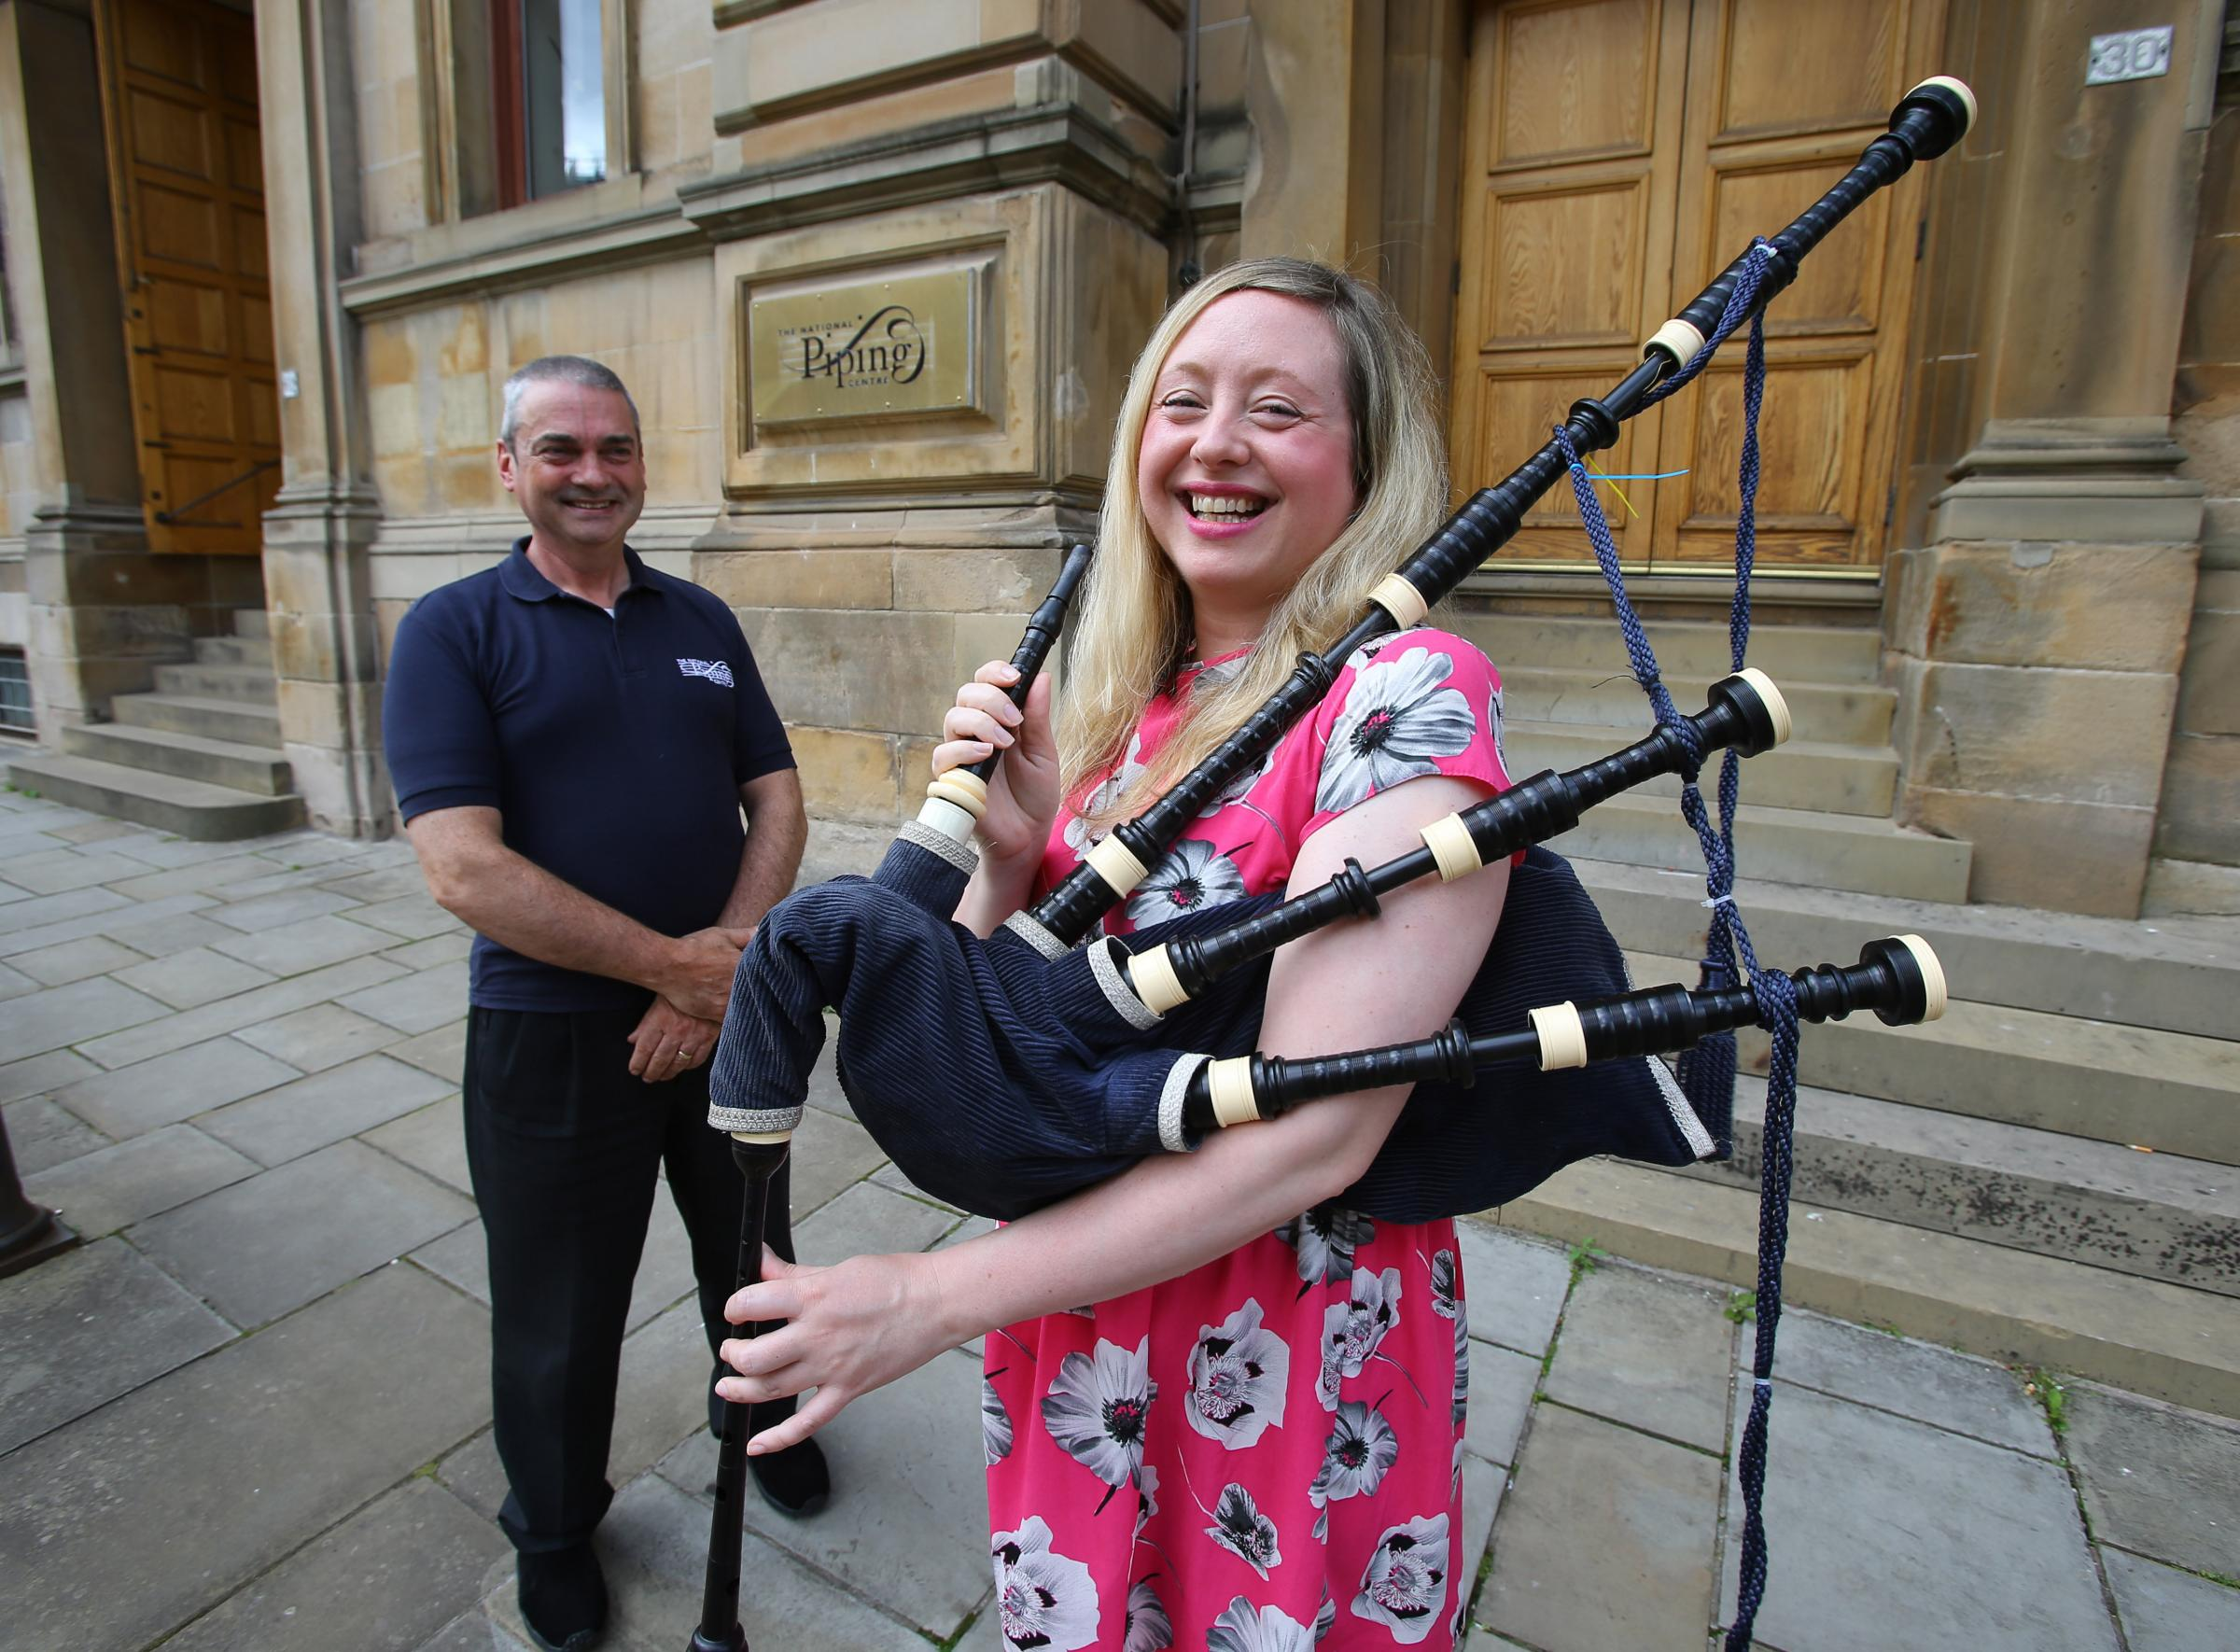 Ahead of Piping Live! Catriona Stewart learns the bagpipes